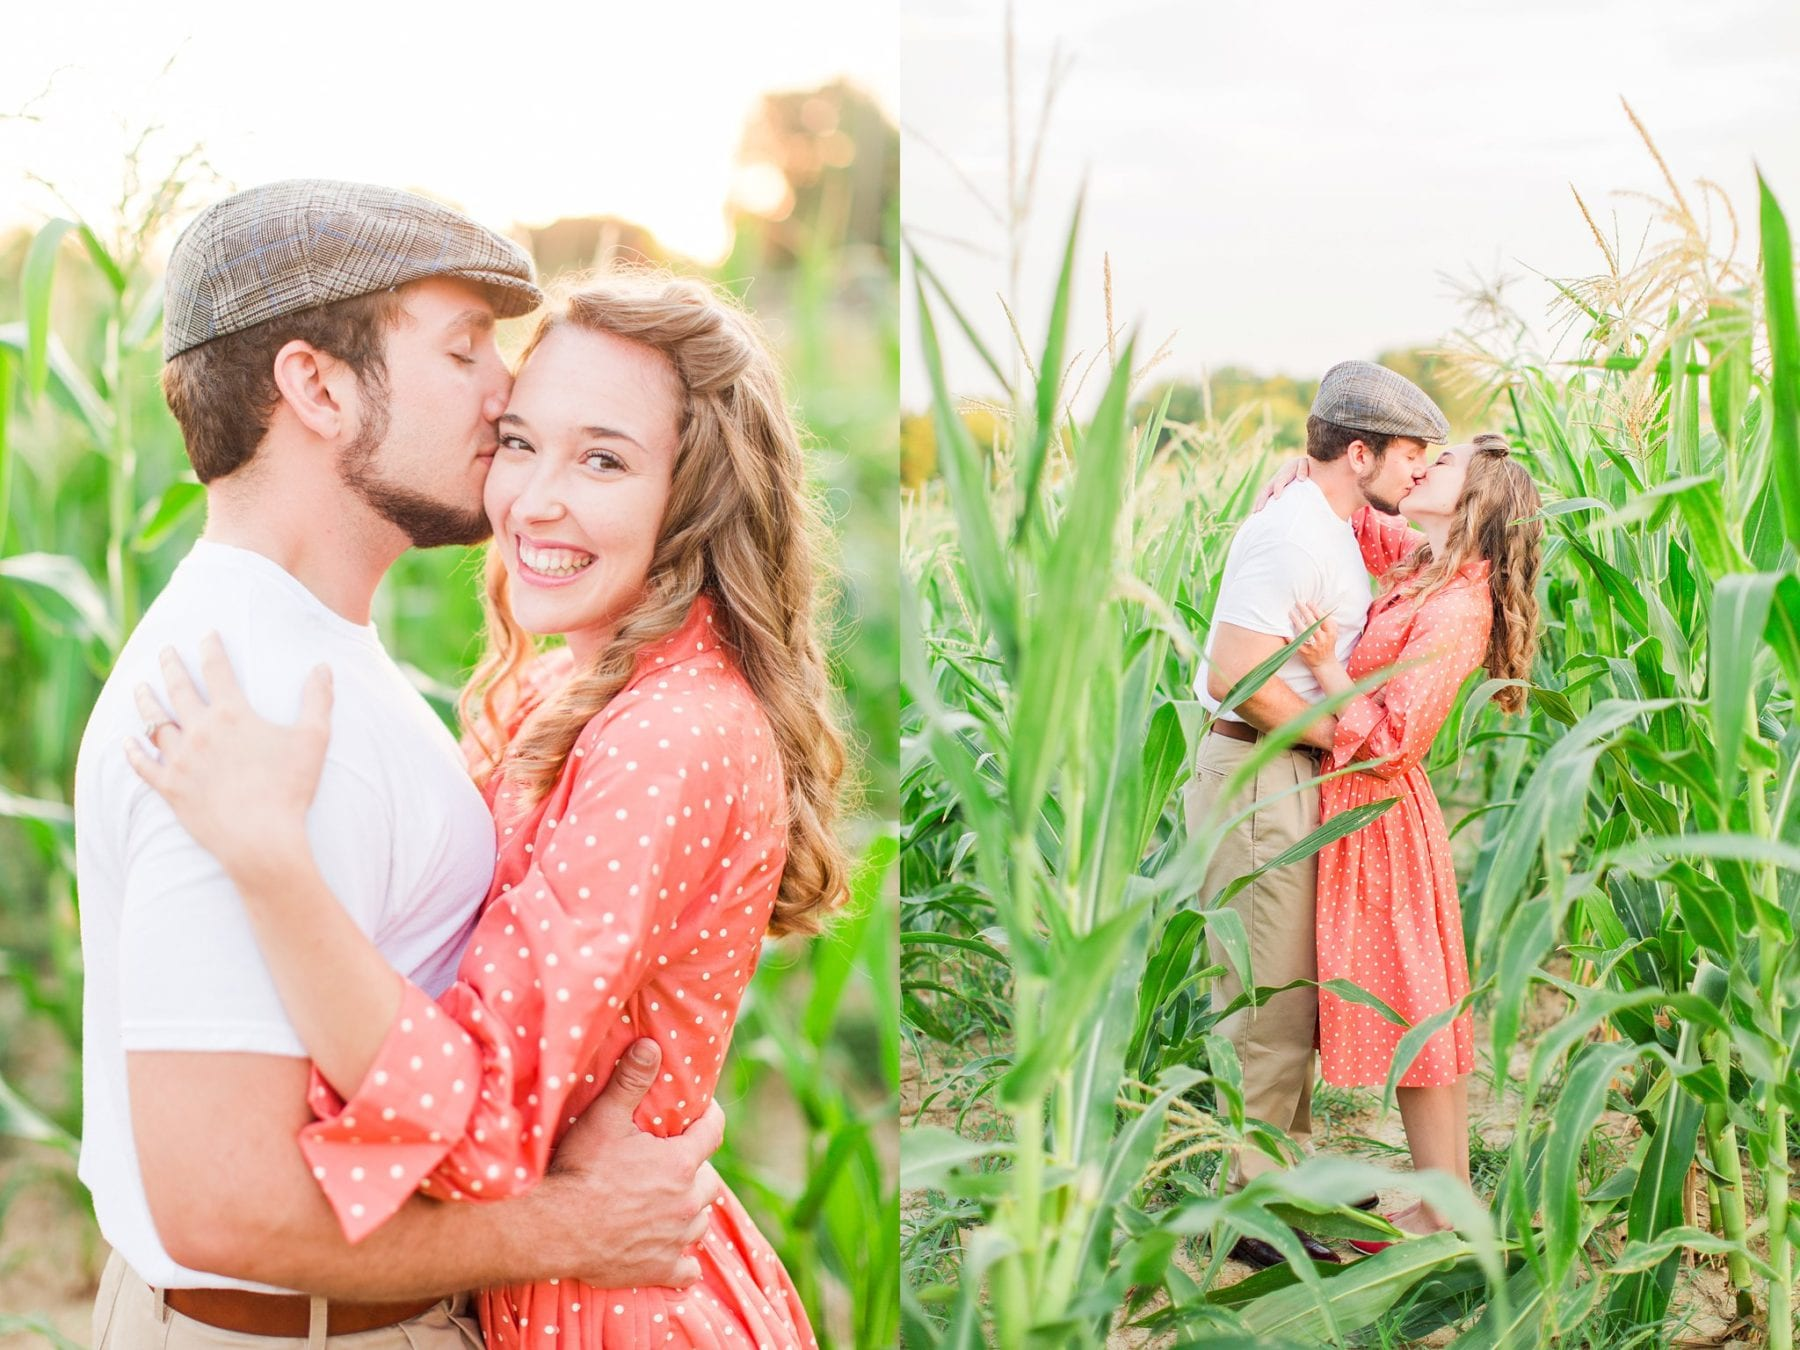 County Fair Engagement Photos Virginia Wedding Photographer Megan Kelsey Photography Samantha & Charles-20.JPG